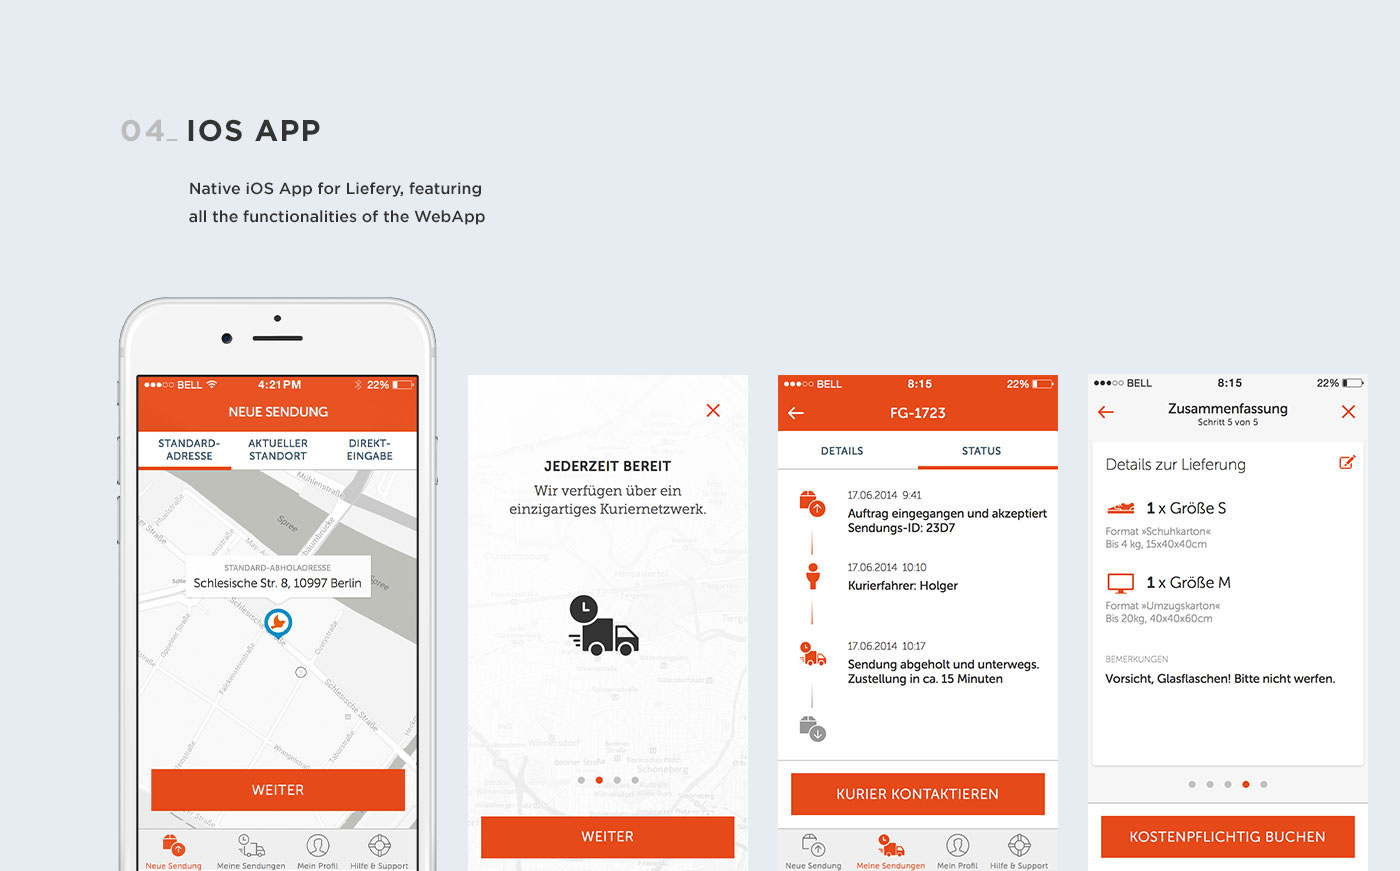 user experience user interface Interaction design  webapp iOS App Android App visual design courier shipping delivery